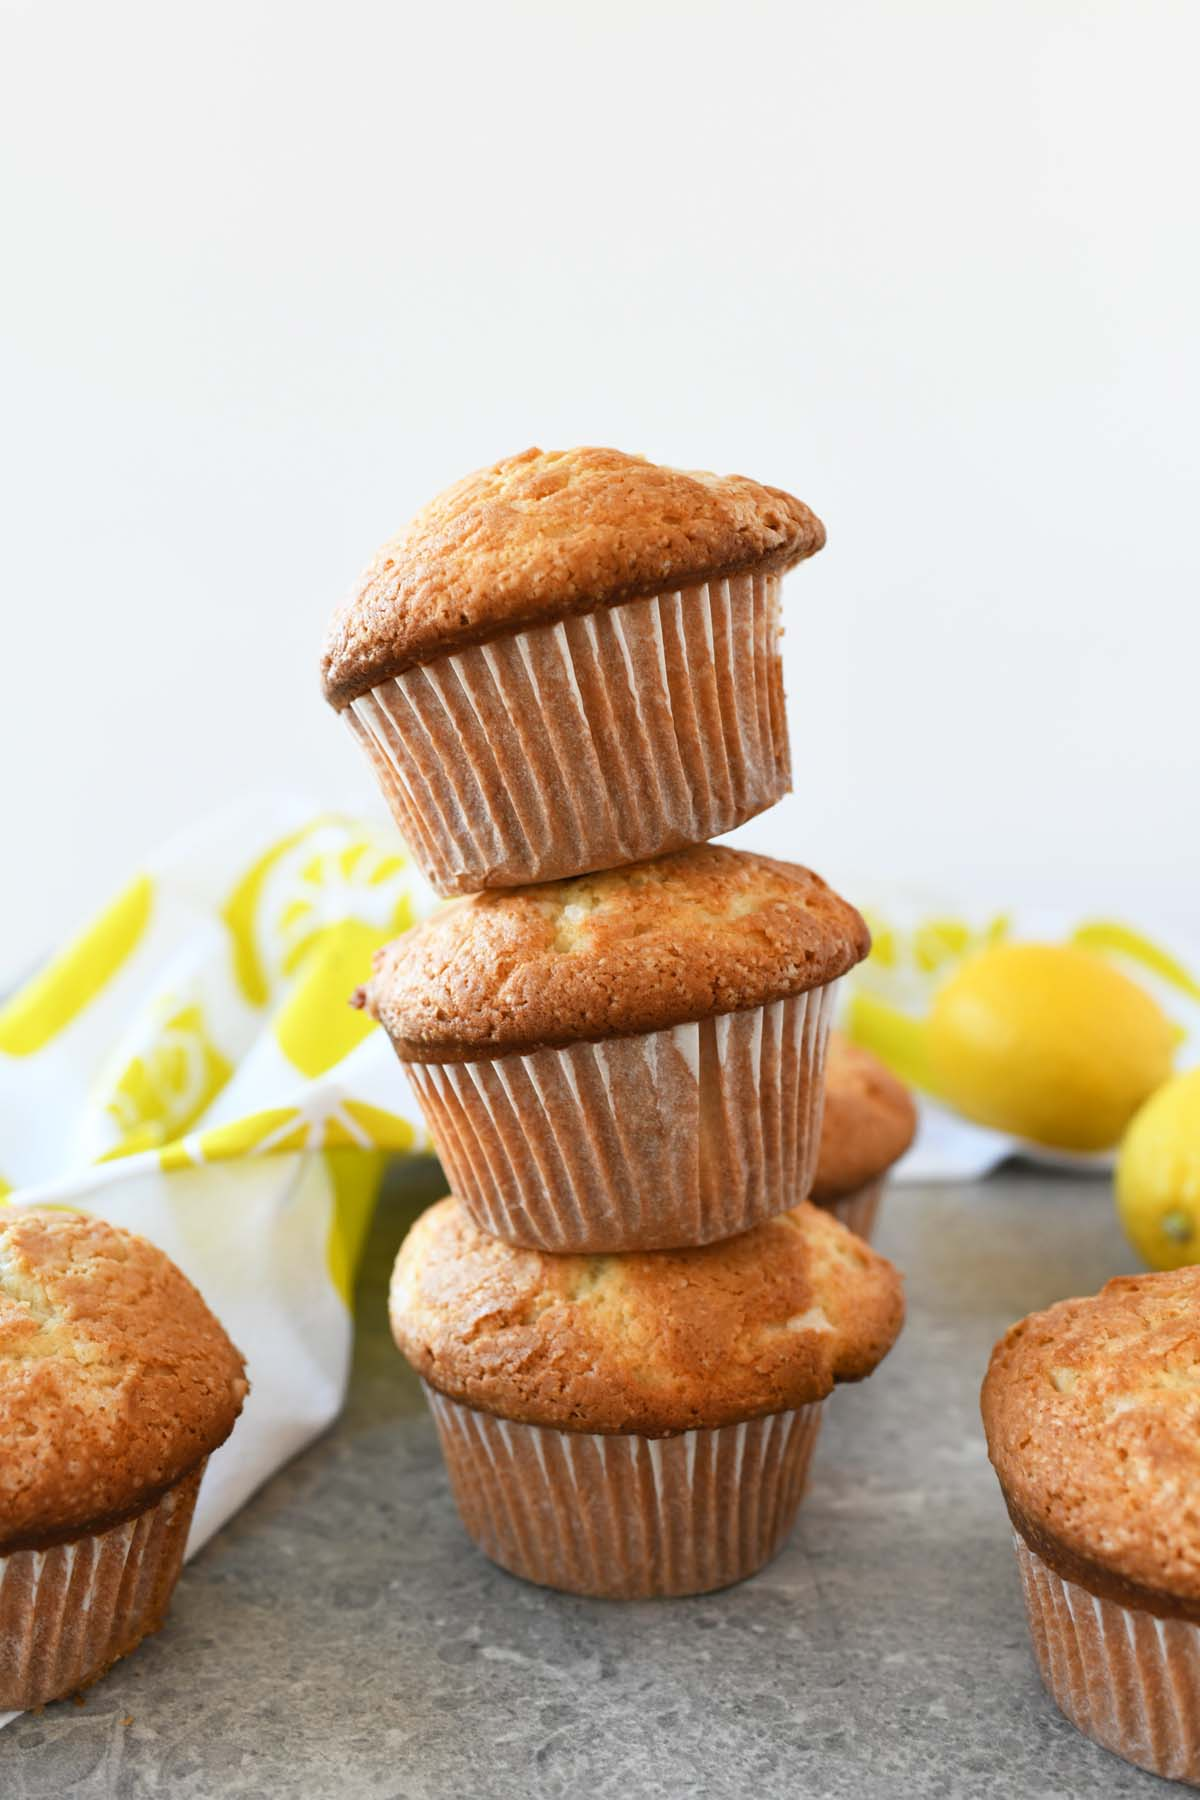 Iced Jumbo Lemon Muffin Recipe are stacked on a grey table with a lemon napkin in the background.